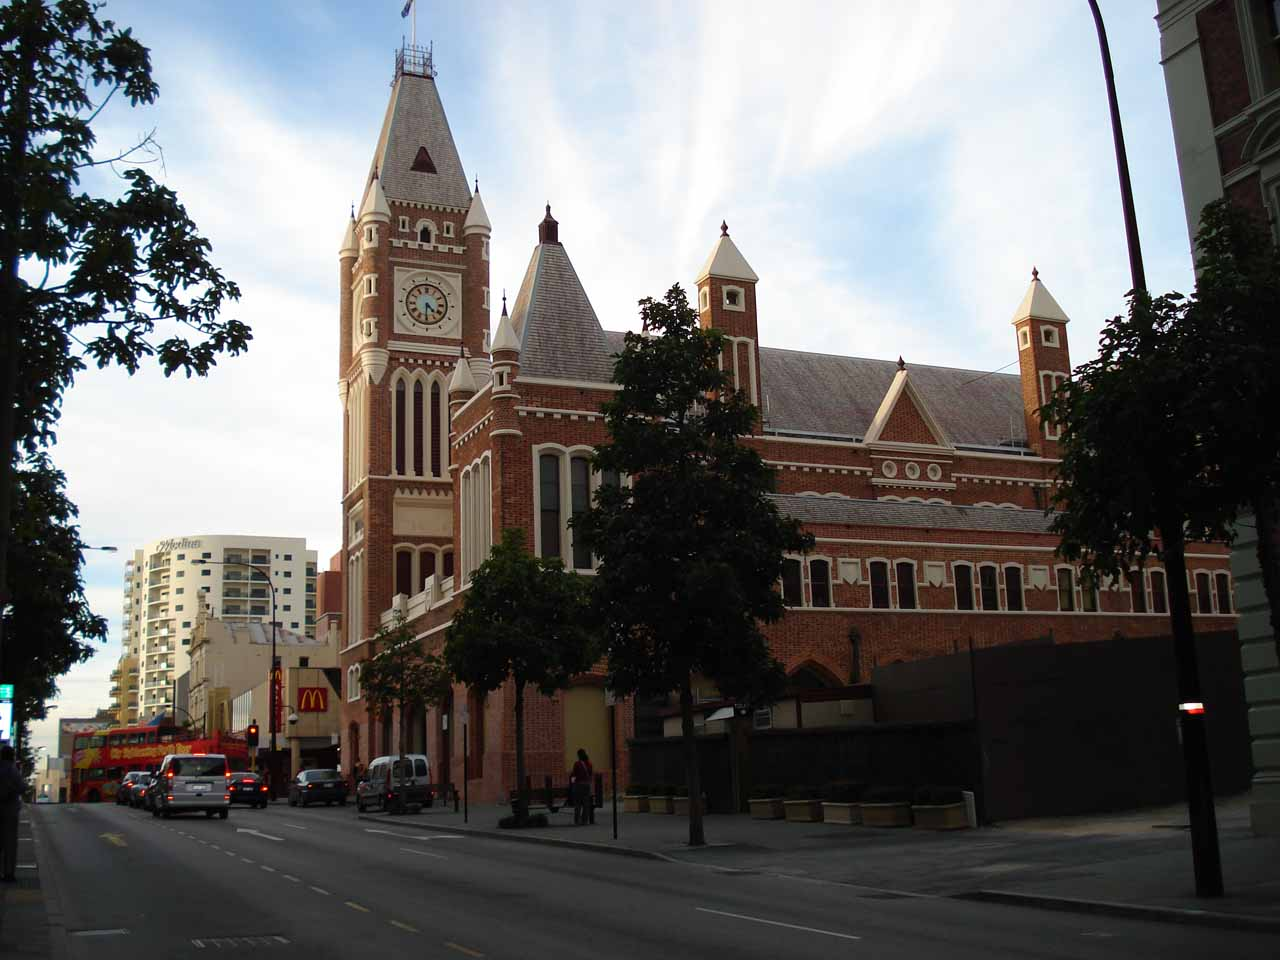 More attractive buildings in the Perth CBD